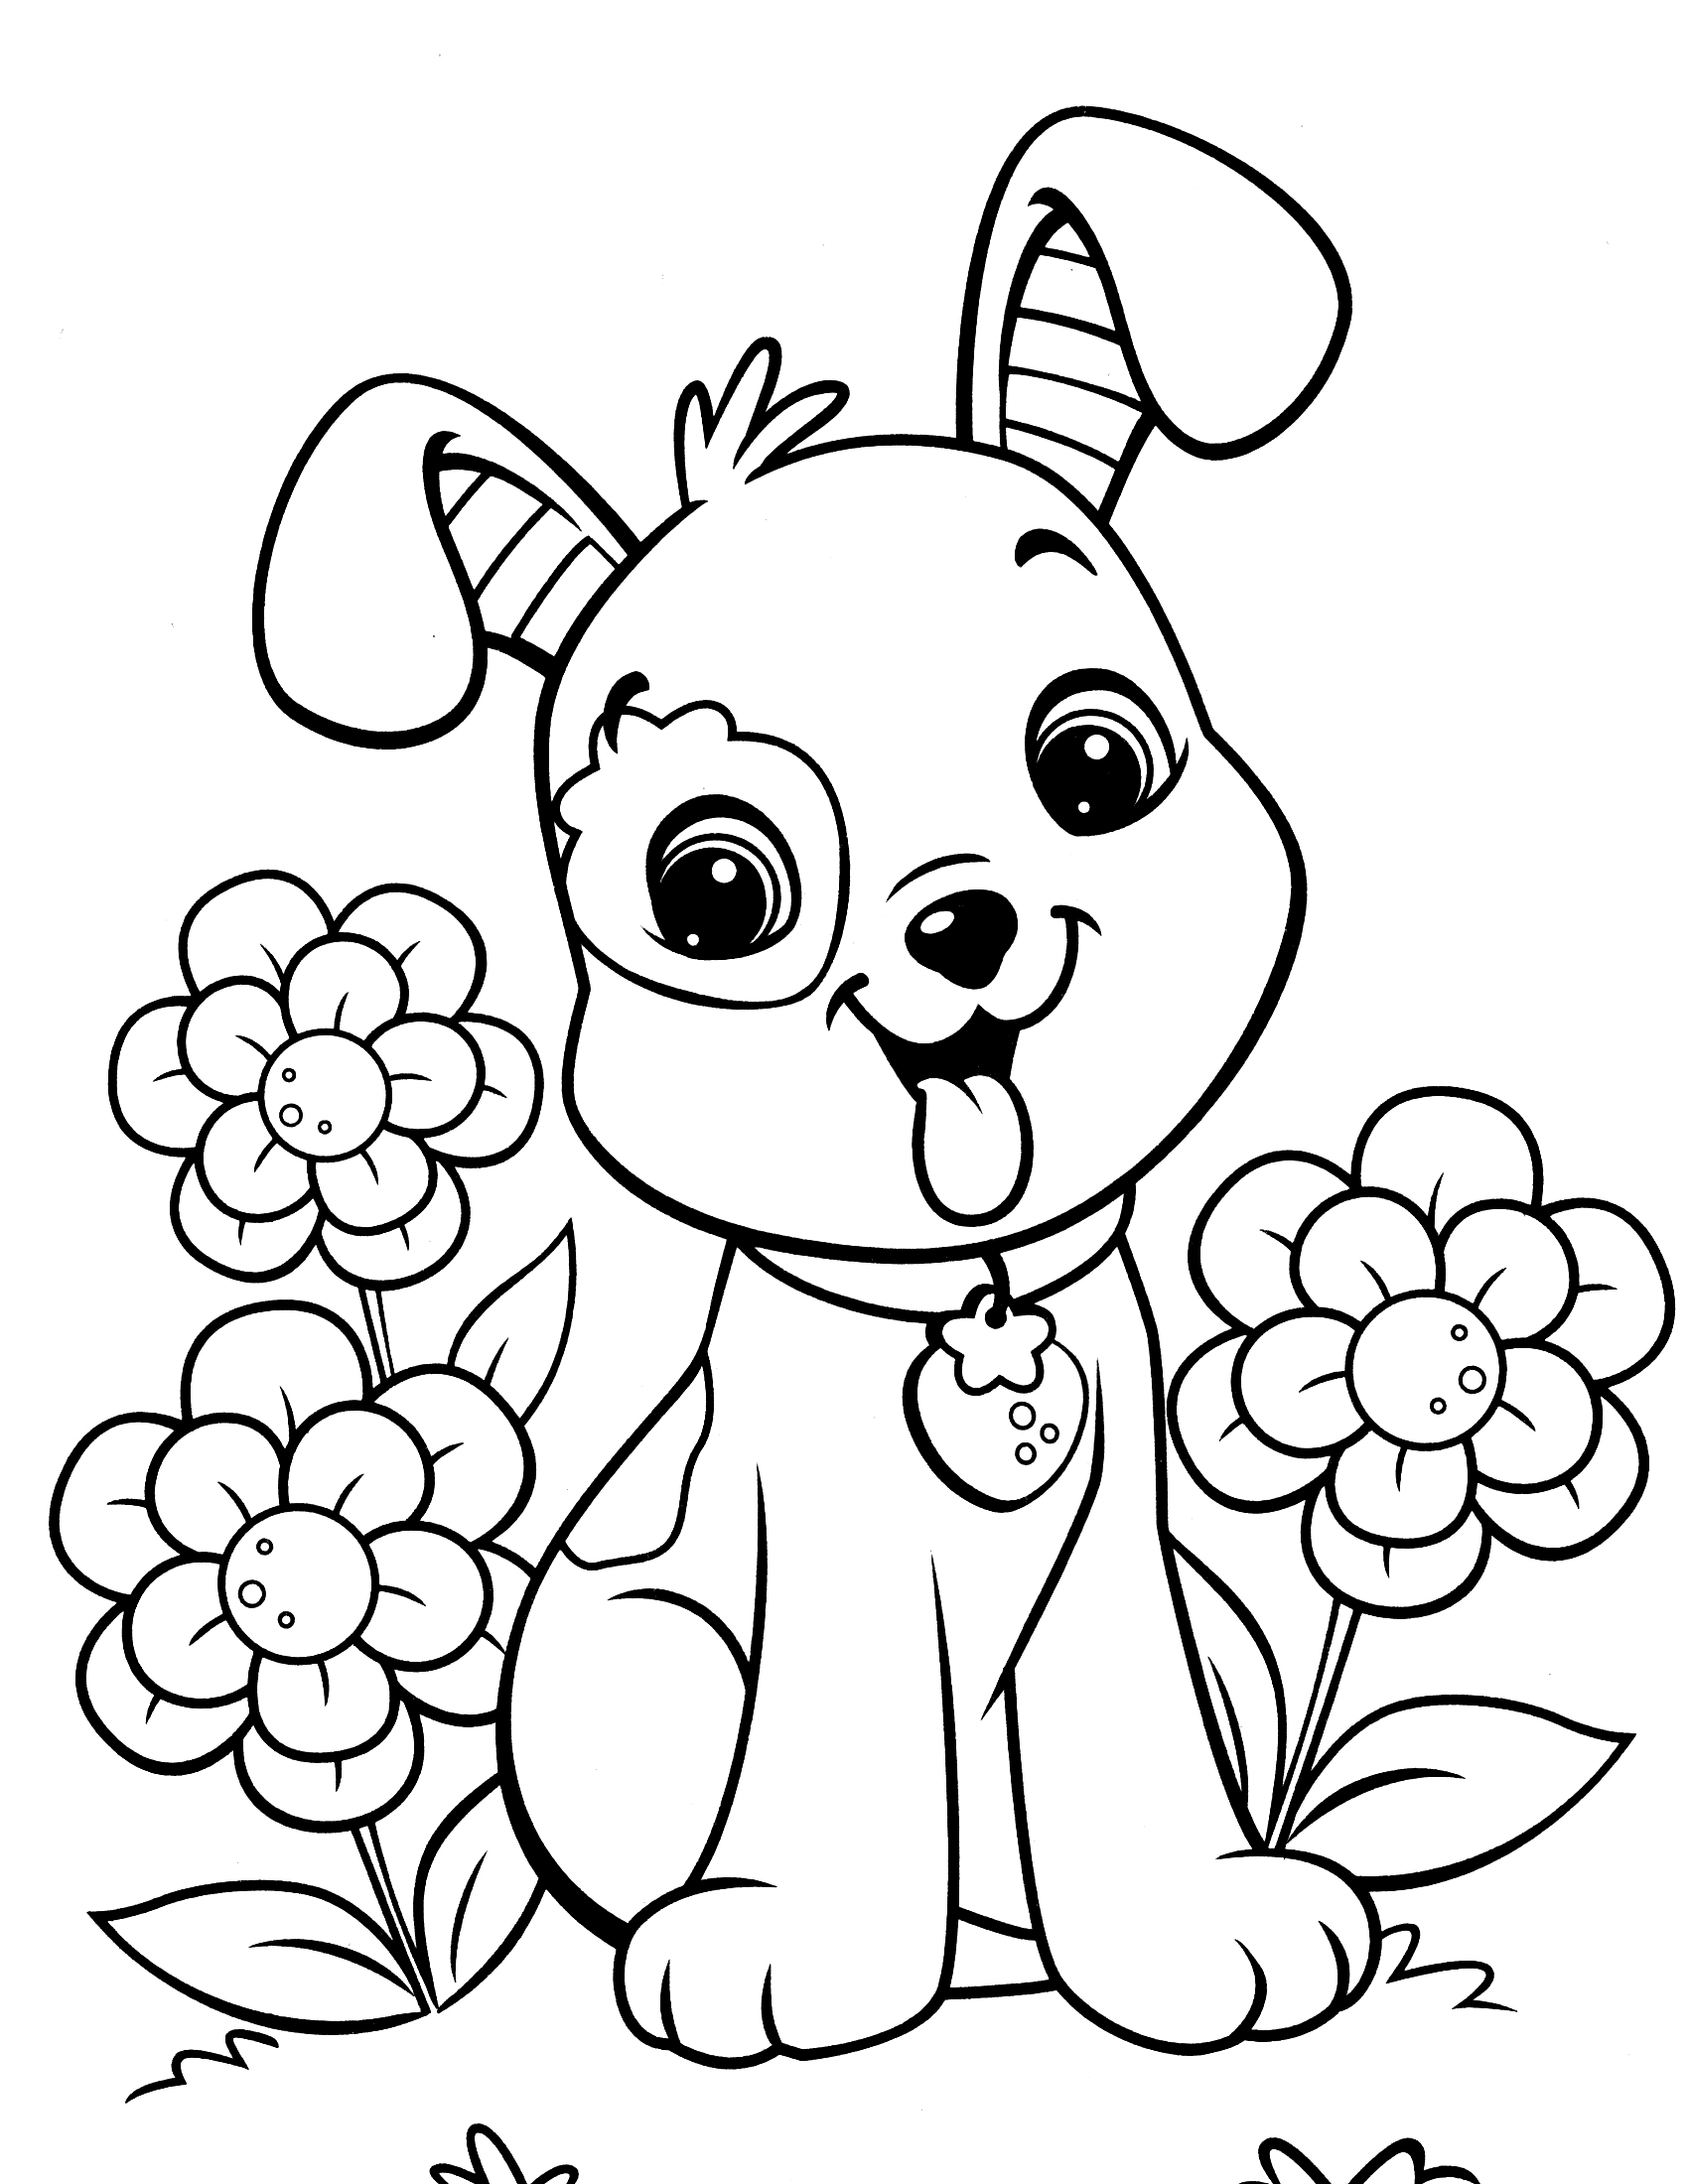 printable picture of a dog dog coloring pages 2018 dr odd of picture printable a dog